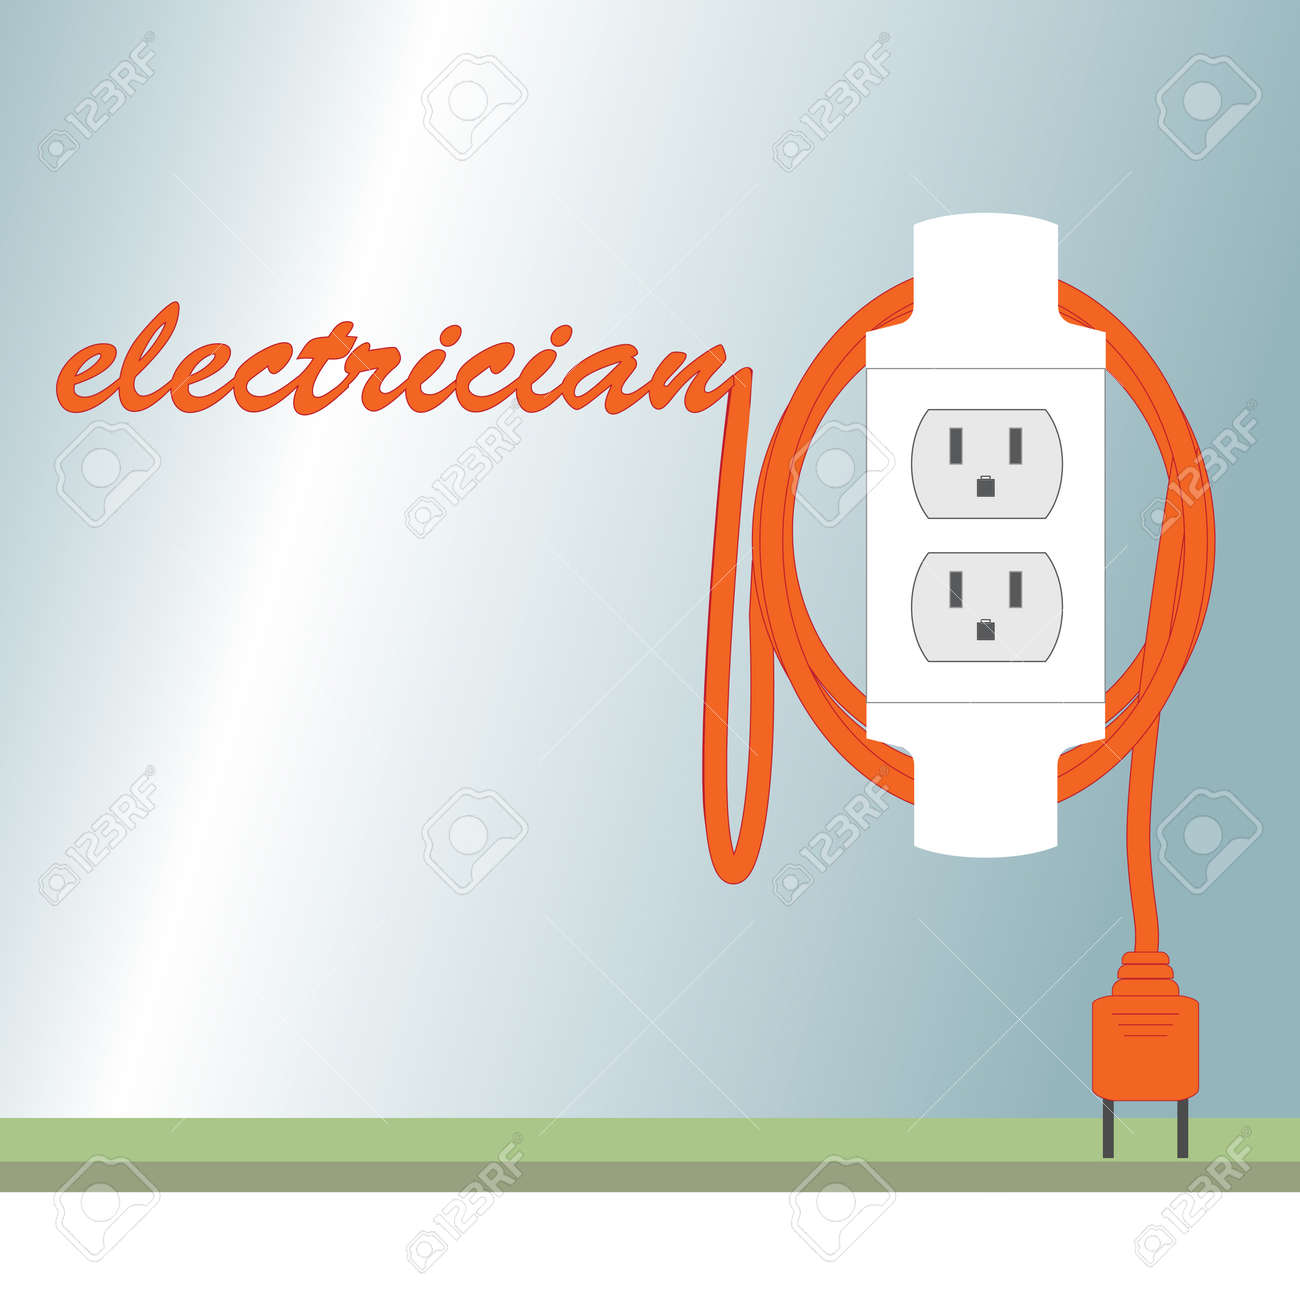 Poster representing electricianinscription in the form of an poster representing electricianinscription in the form of an electrical cordvivid illustration business reheart Images